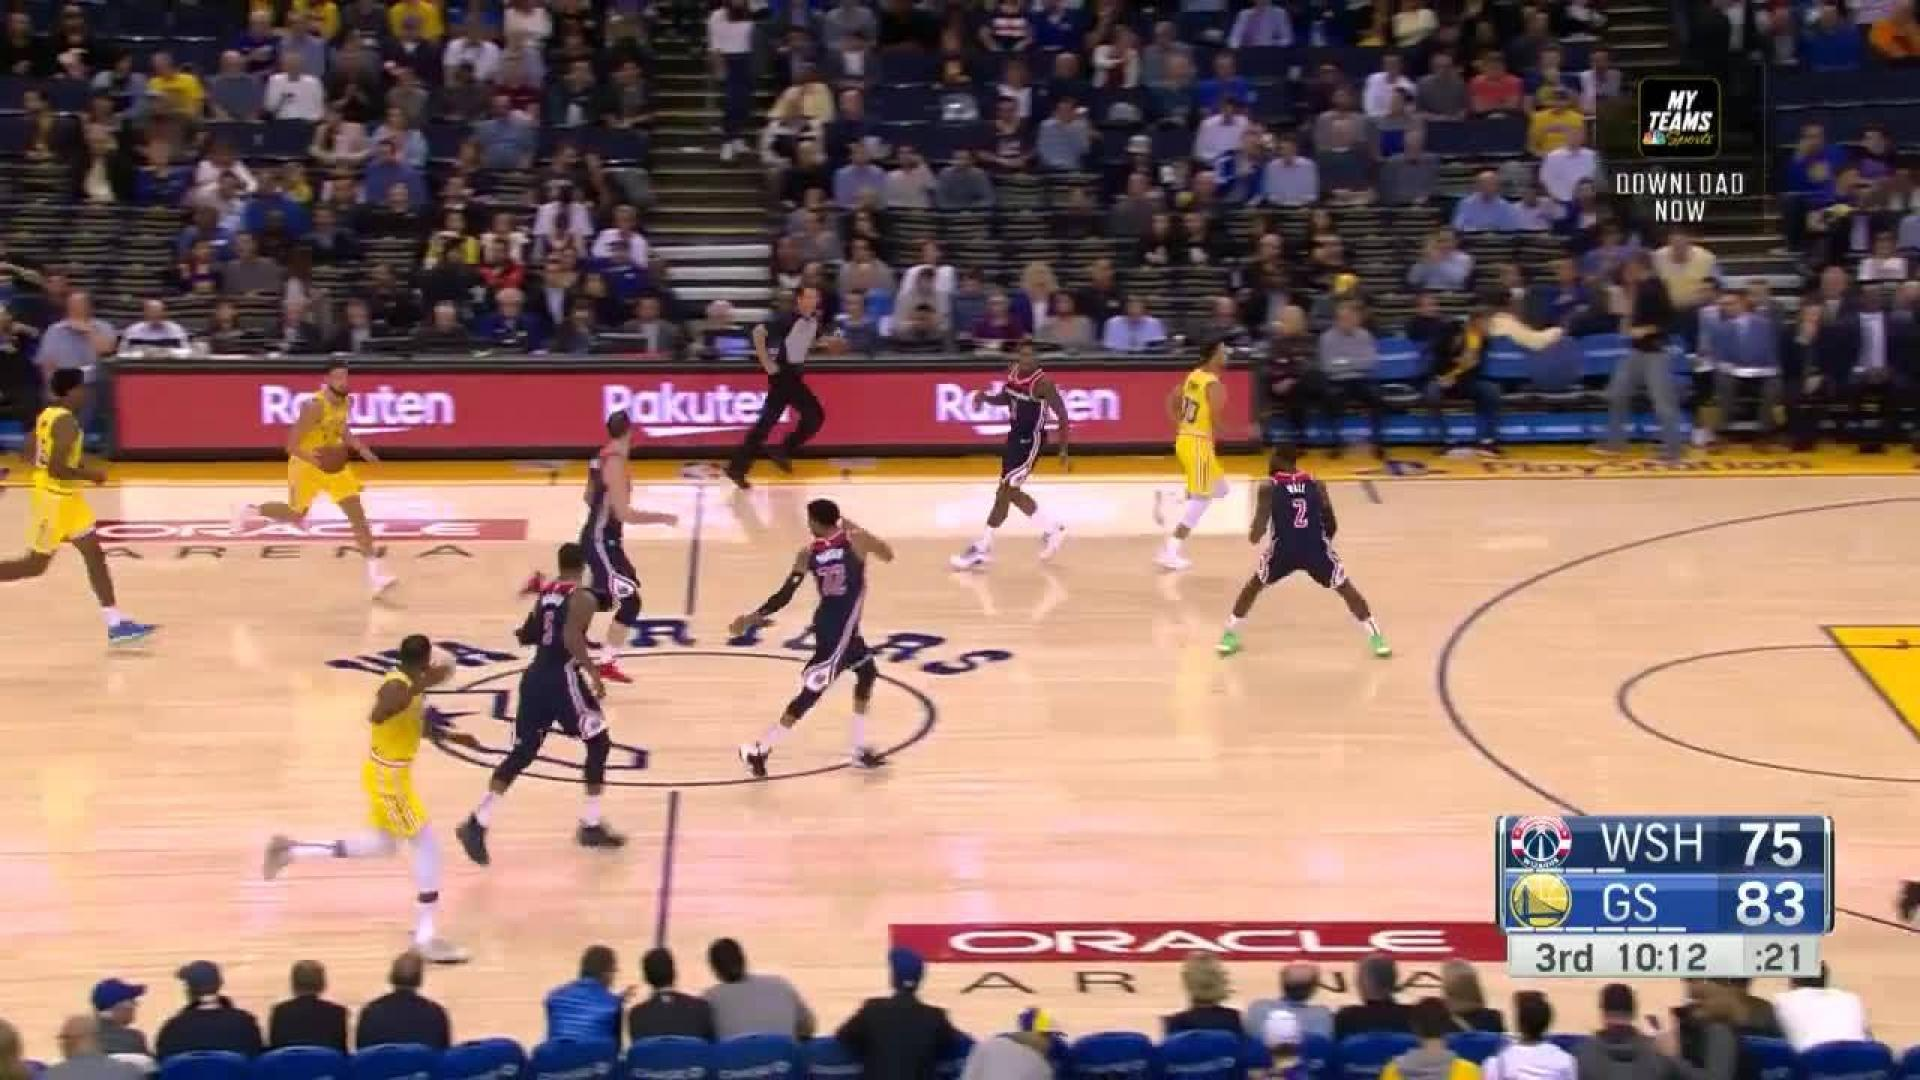 Dunk by Kevin Durant in the third quarter | NBA com